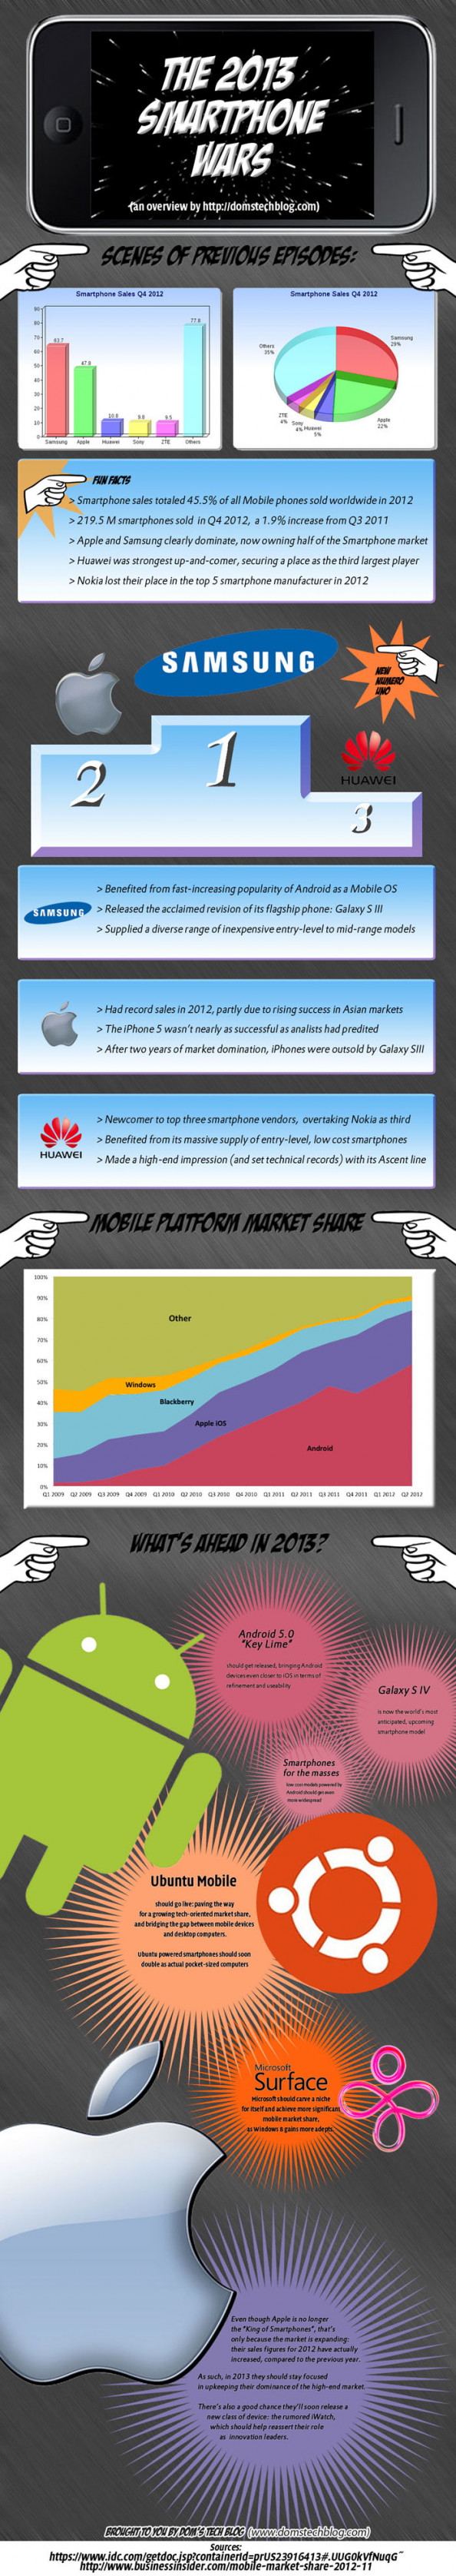 The 2013 Smartphone Wars Infographic